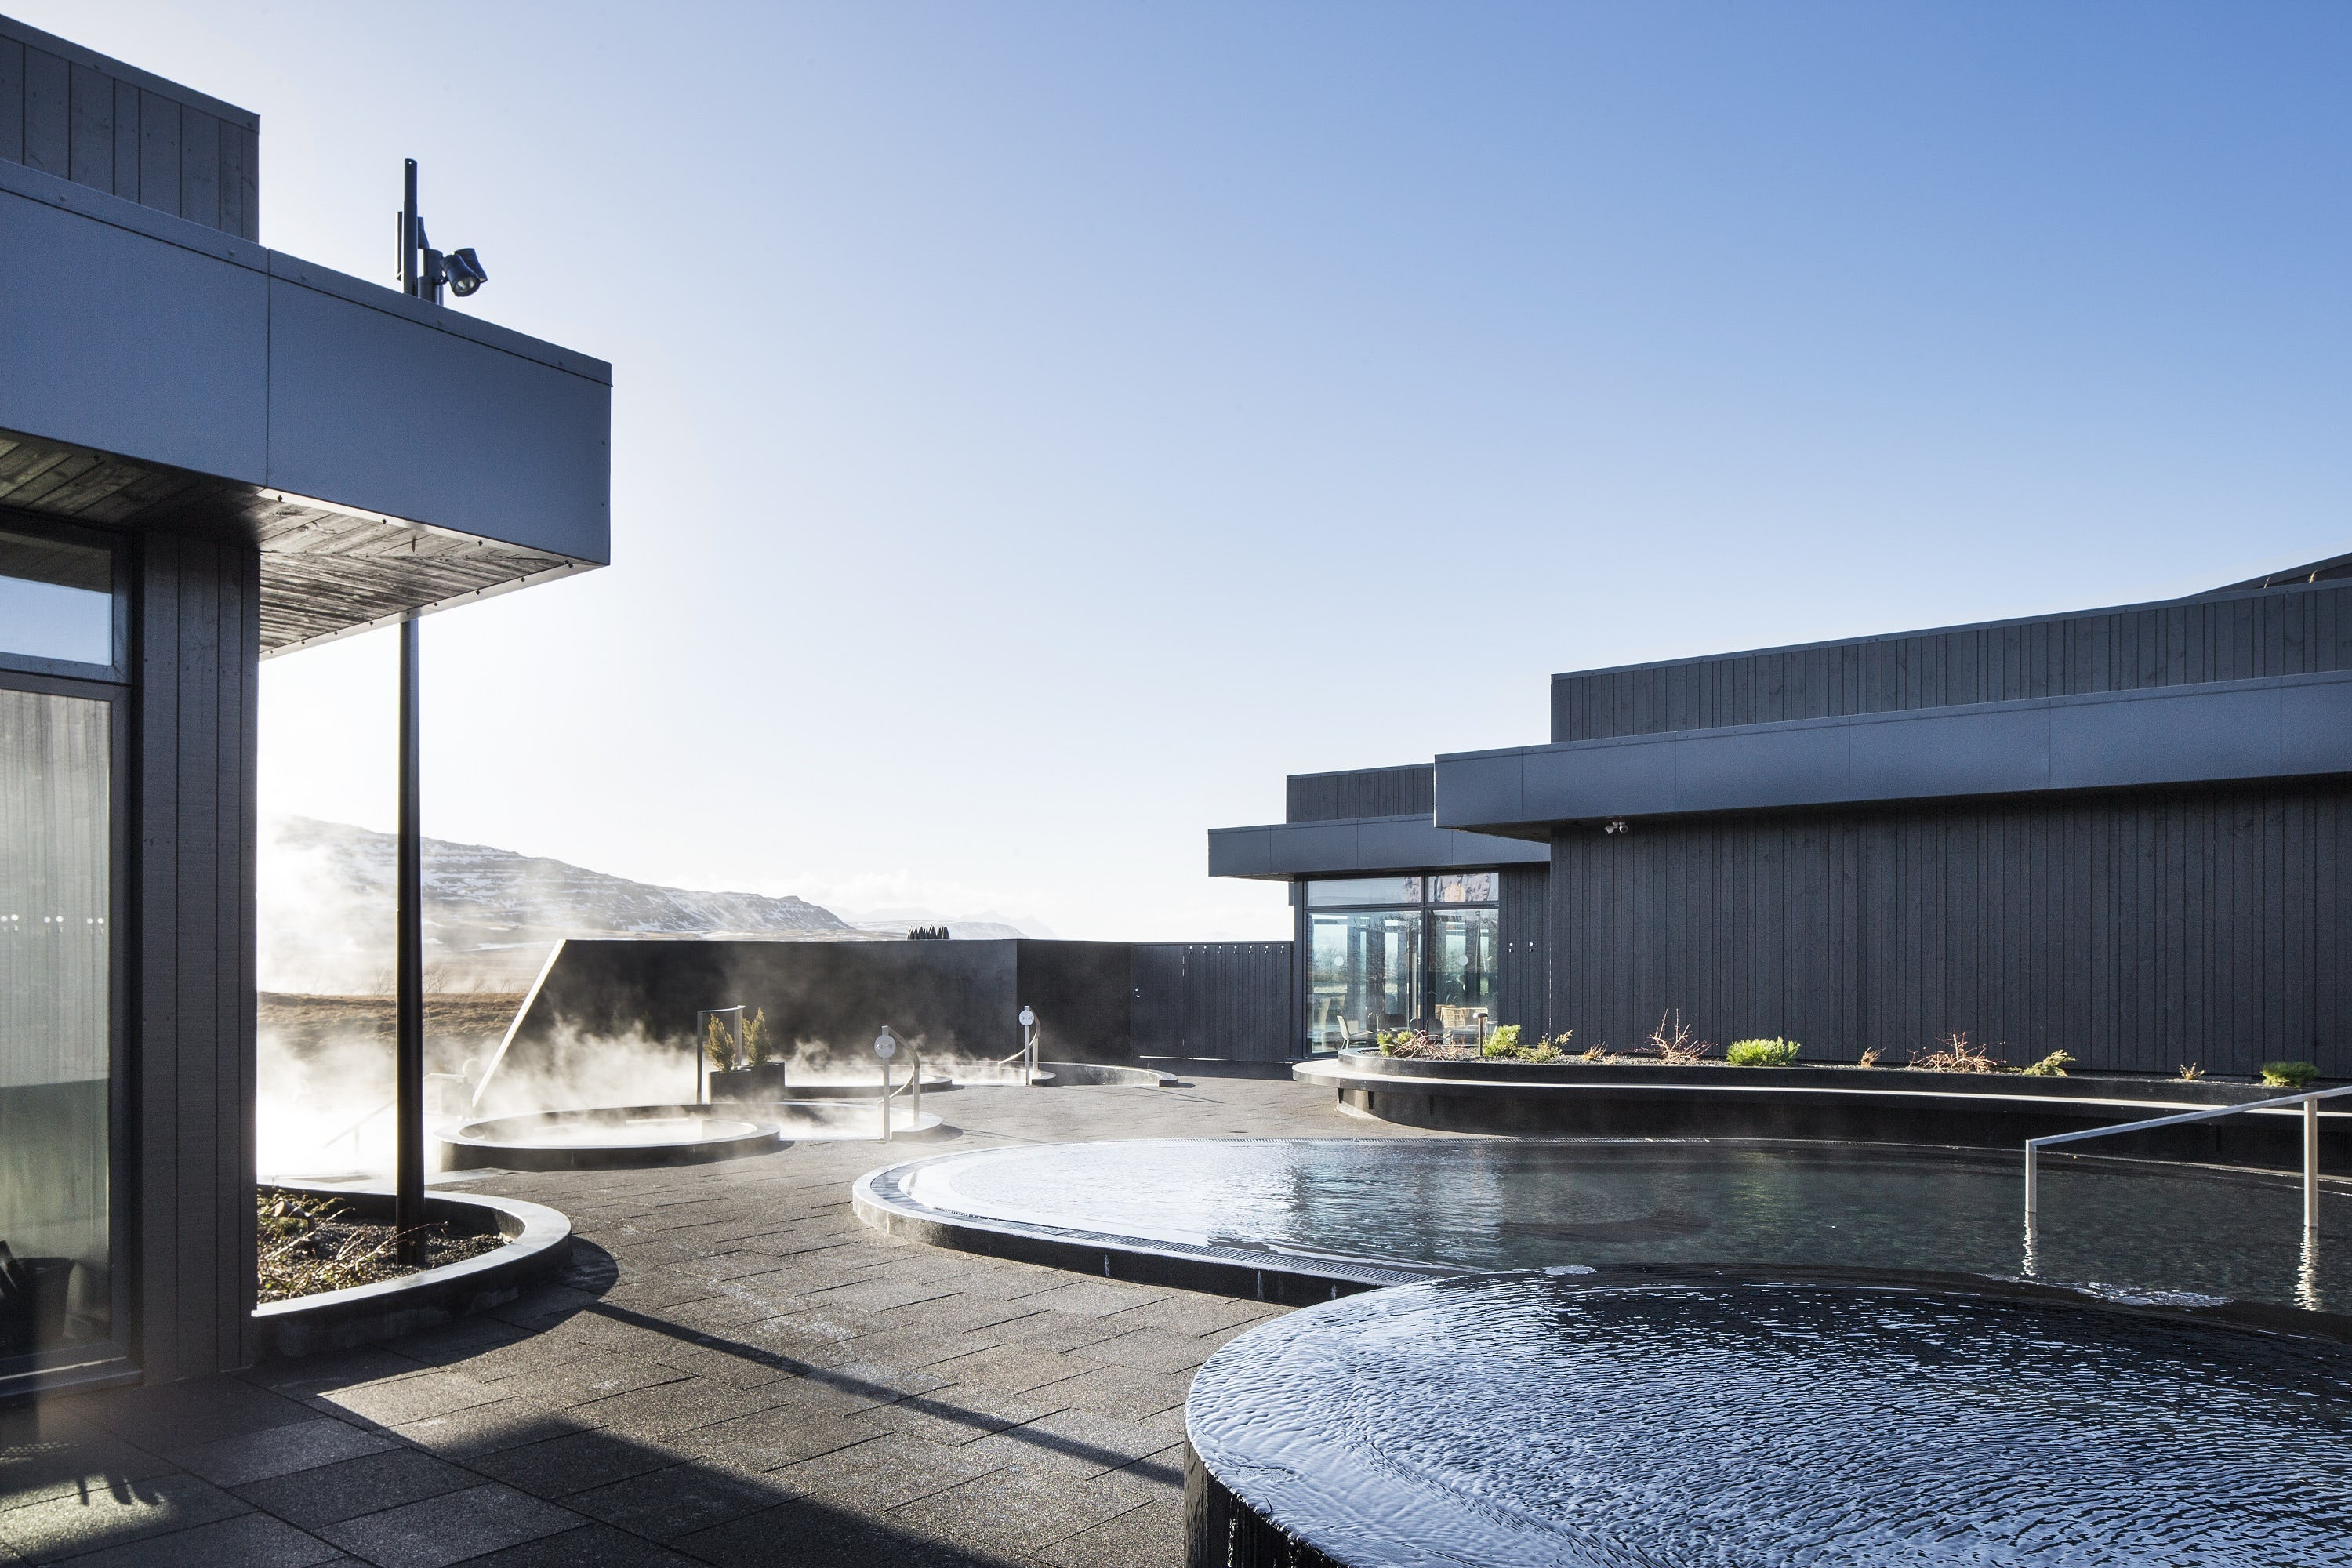 You'll be surrounded by the beautiful Icelandic nature at Krauma geothermal nature baths